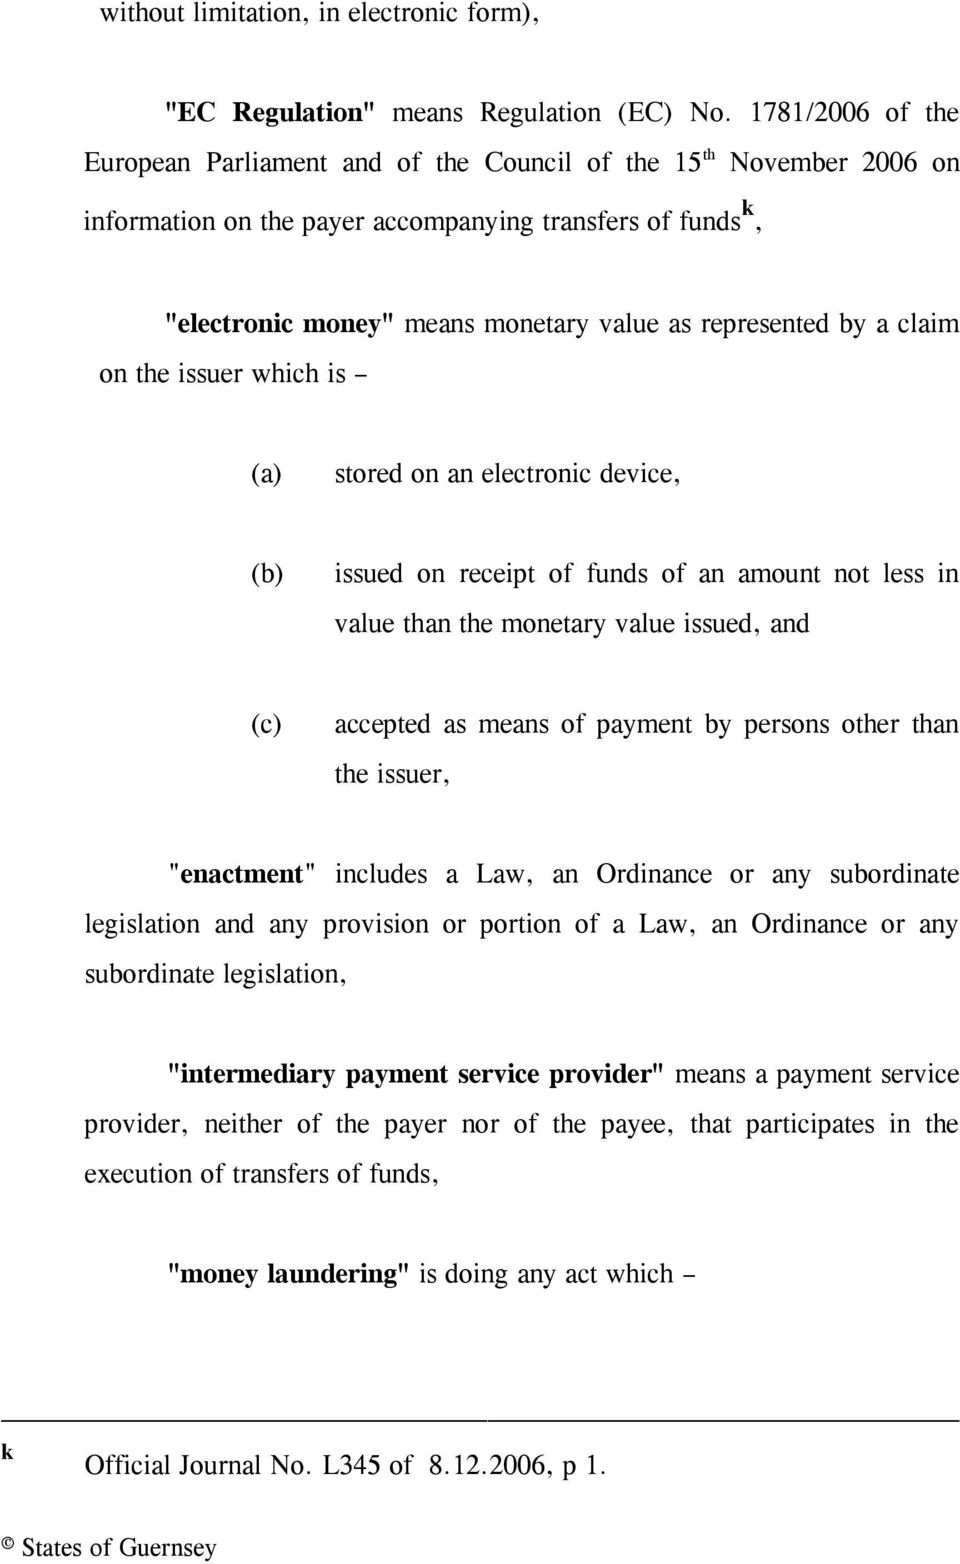 represented by a claim on the issuer which is stored on an electronic device, issued on receipt of funds of an amount not less in value than the monetary value issued, and (c) accepted as means of